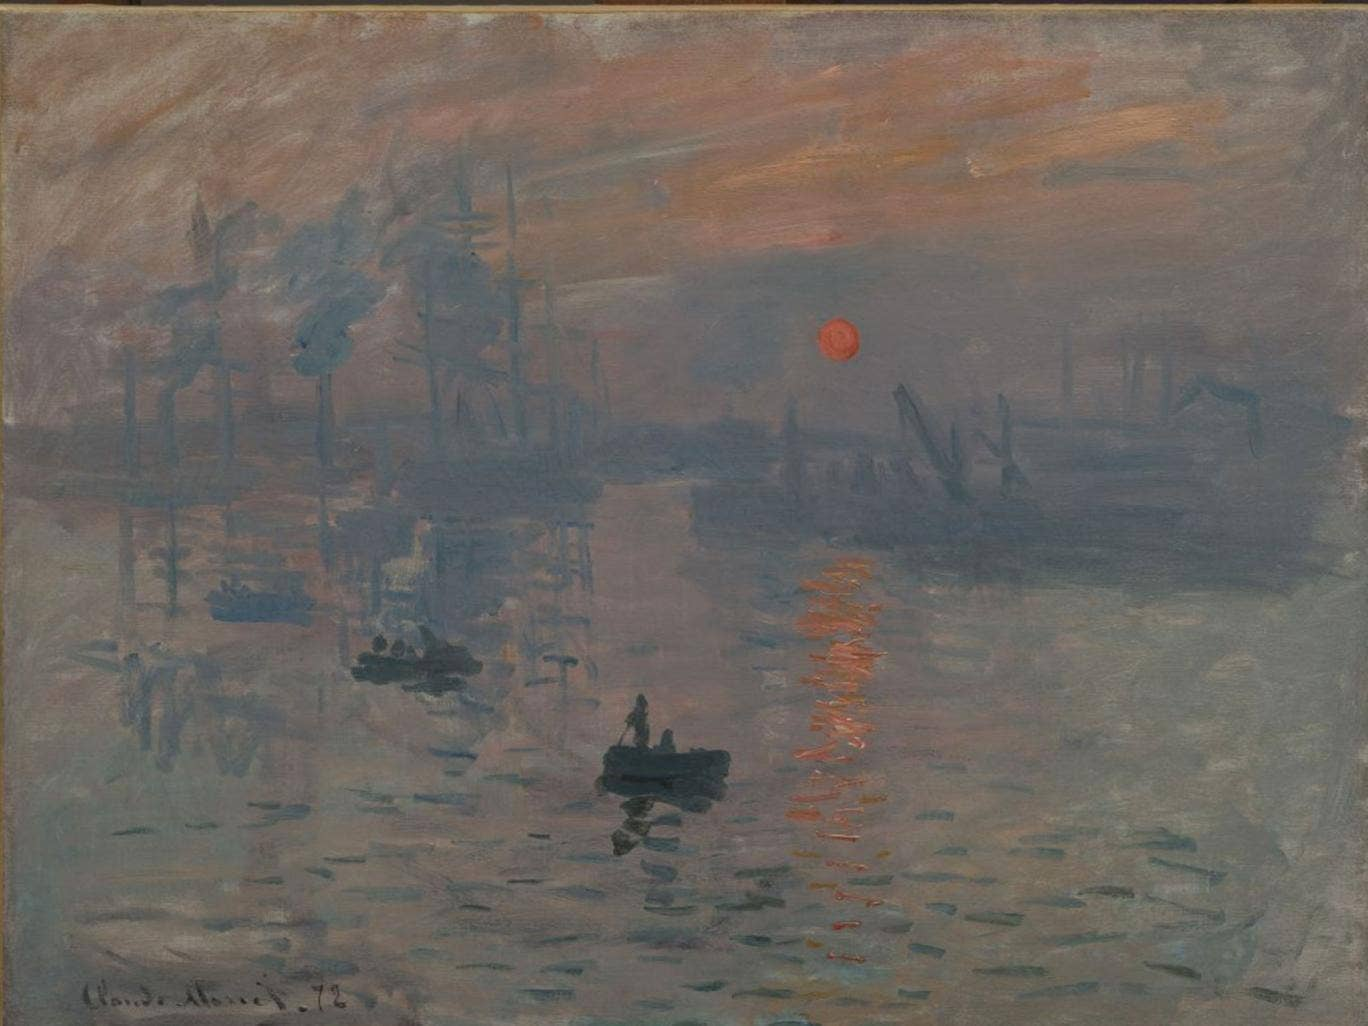 Once they knew Monet's exact viewpoint, the researchers could date the painting by the position of the sun, the height of the tide and the weather